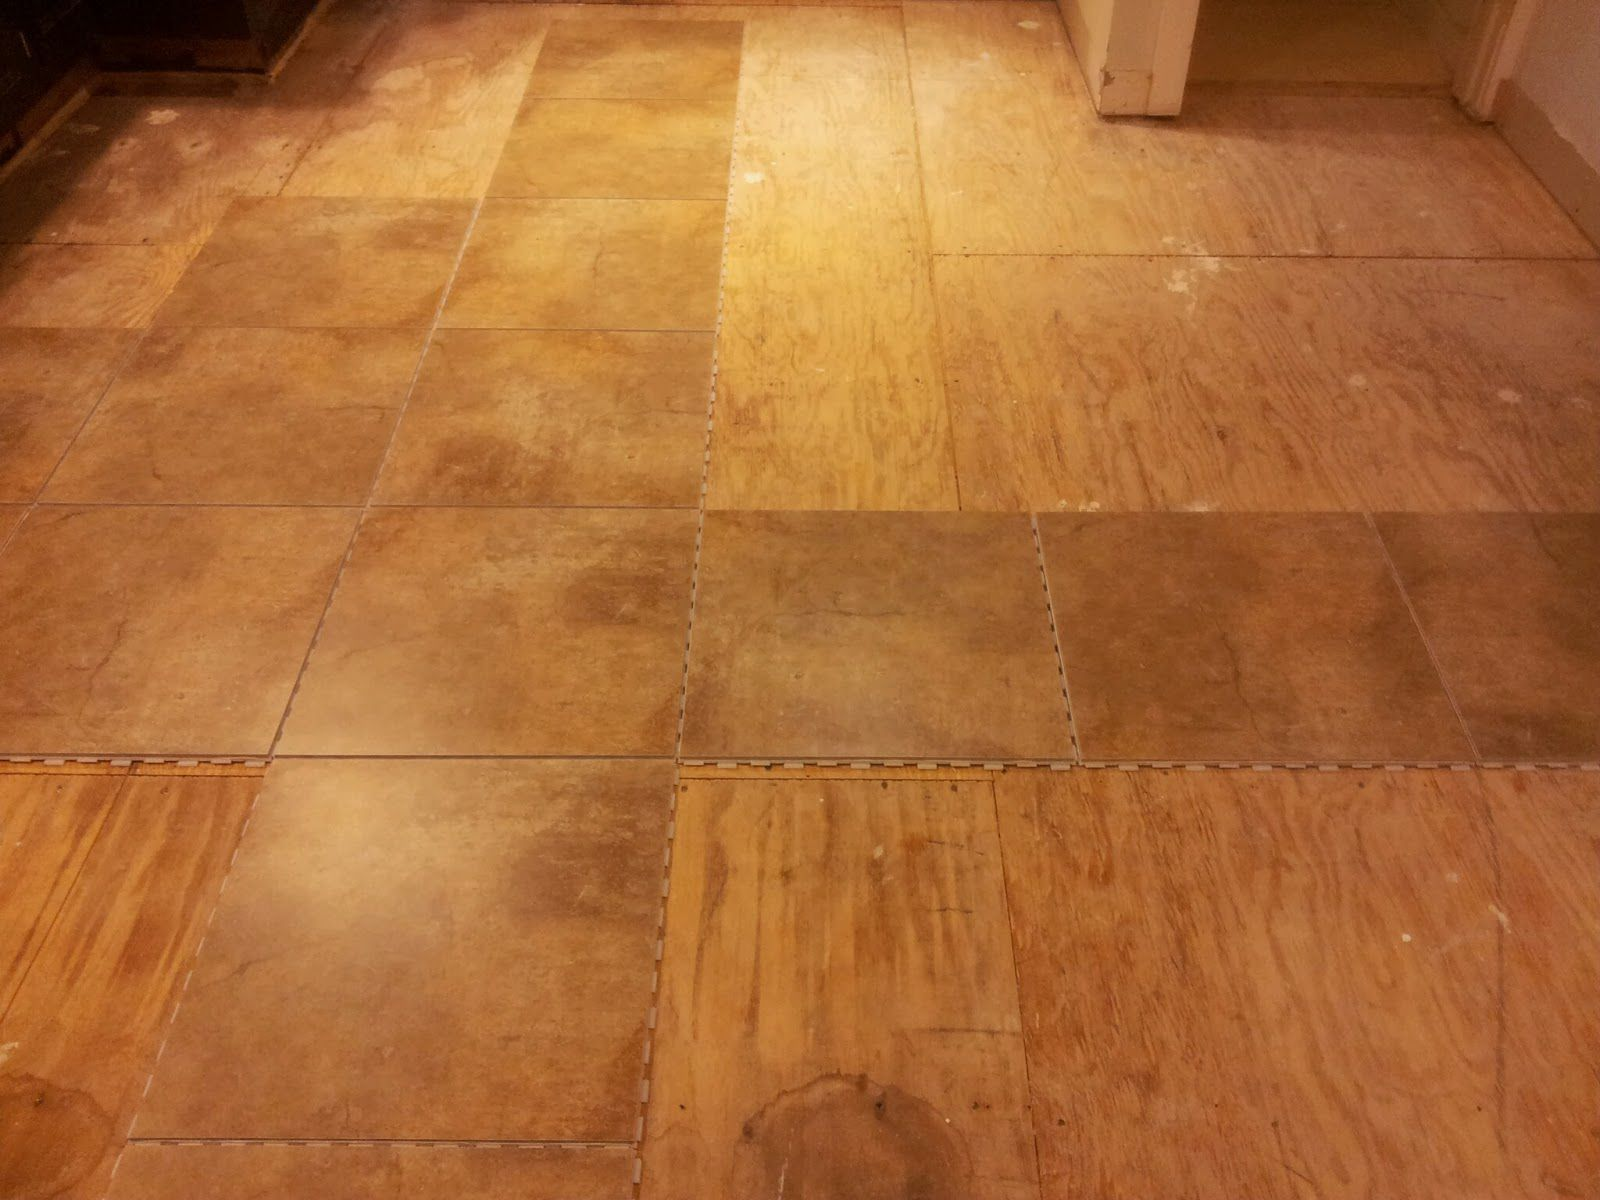 Snapstone Floors An Easy Way To Lay Ceramic Tile